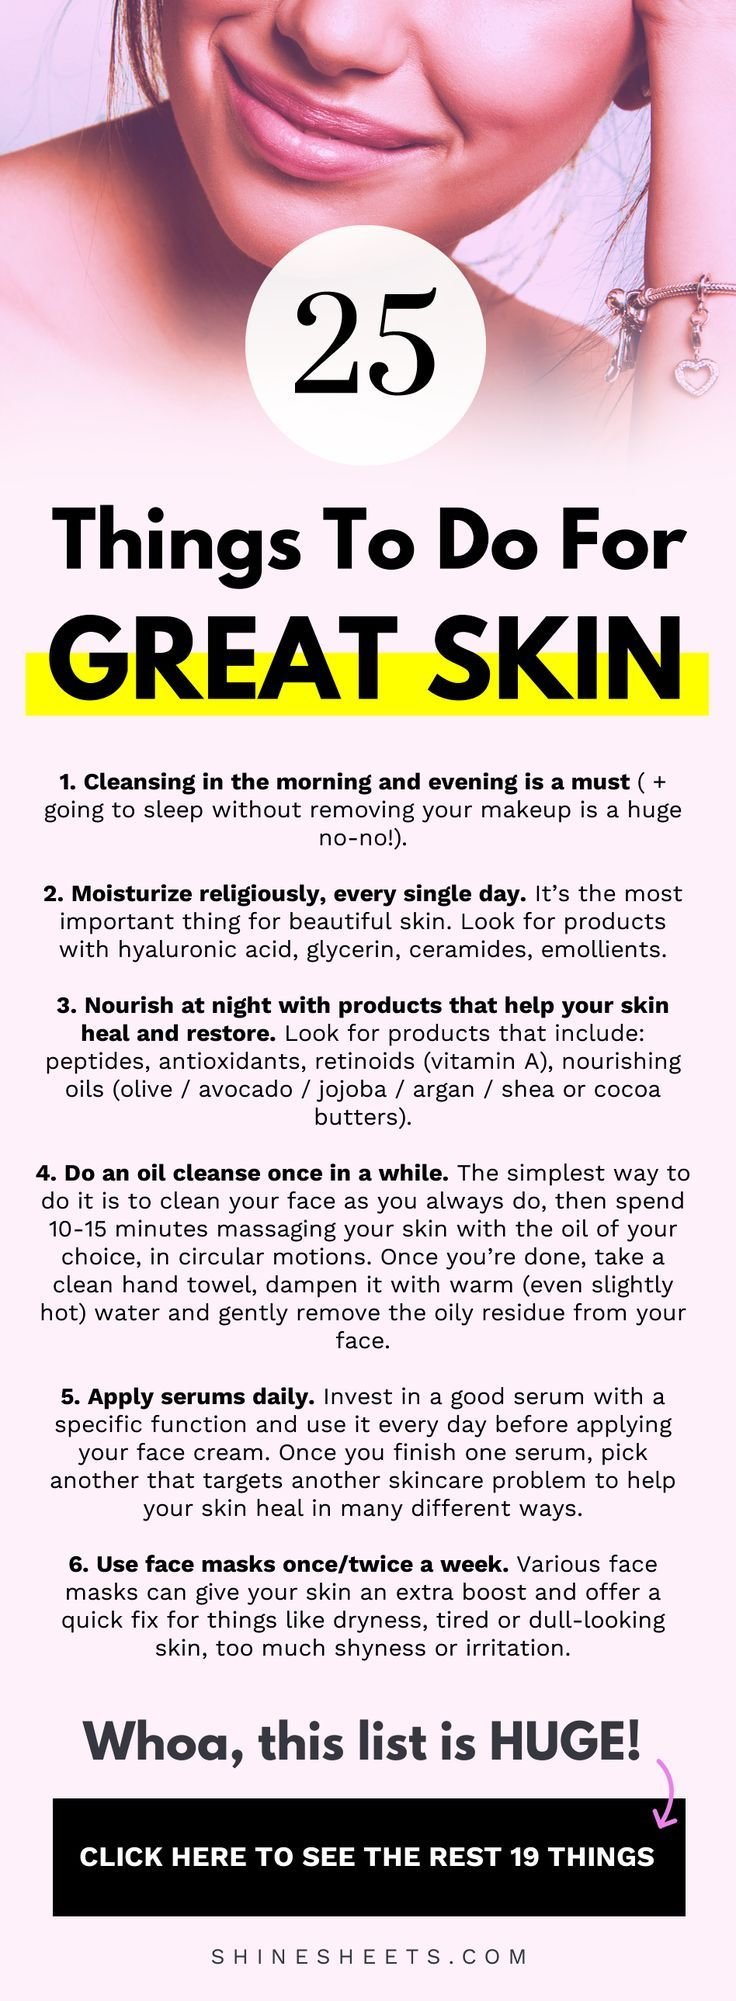 Ever wished your skin looked better? We made this list of things to do for great skin, so you can check if you're doing your skincare right and shared the best skincare hacks! + New to skincare? This list is a great place to start. | ShineSheets.com | Skincare routine, skincare products, skincare tips beauty secrets, skin care, skincare lists and skincare hacks, how to care for your skin, improve your skin, acne, dry skin, sensitive skin #skincare #skin #beauty #beautytips #tips